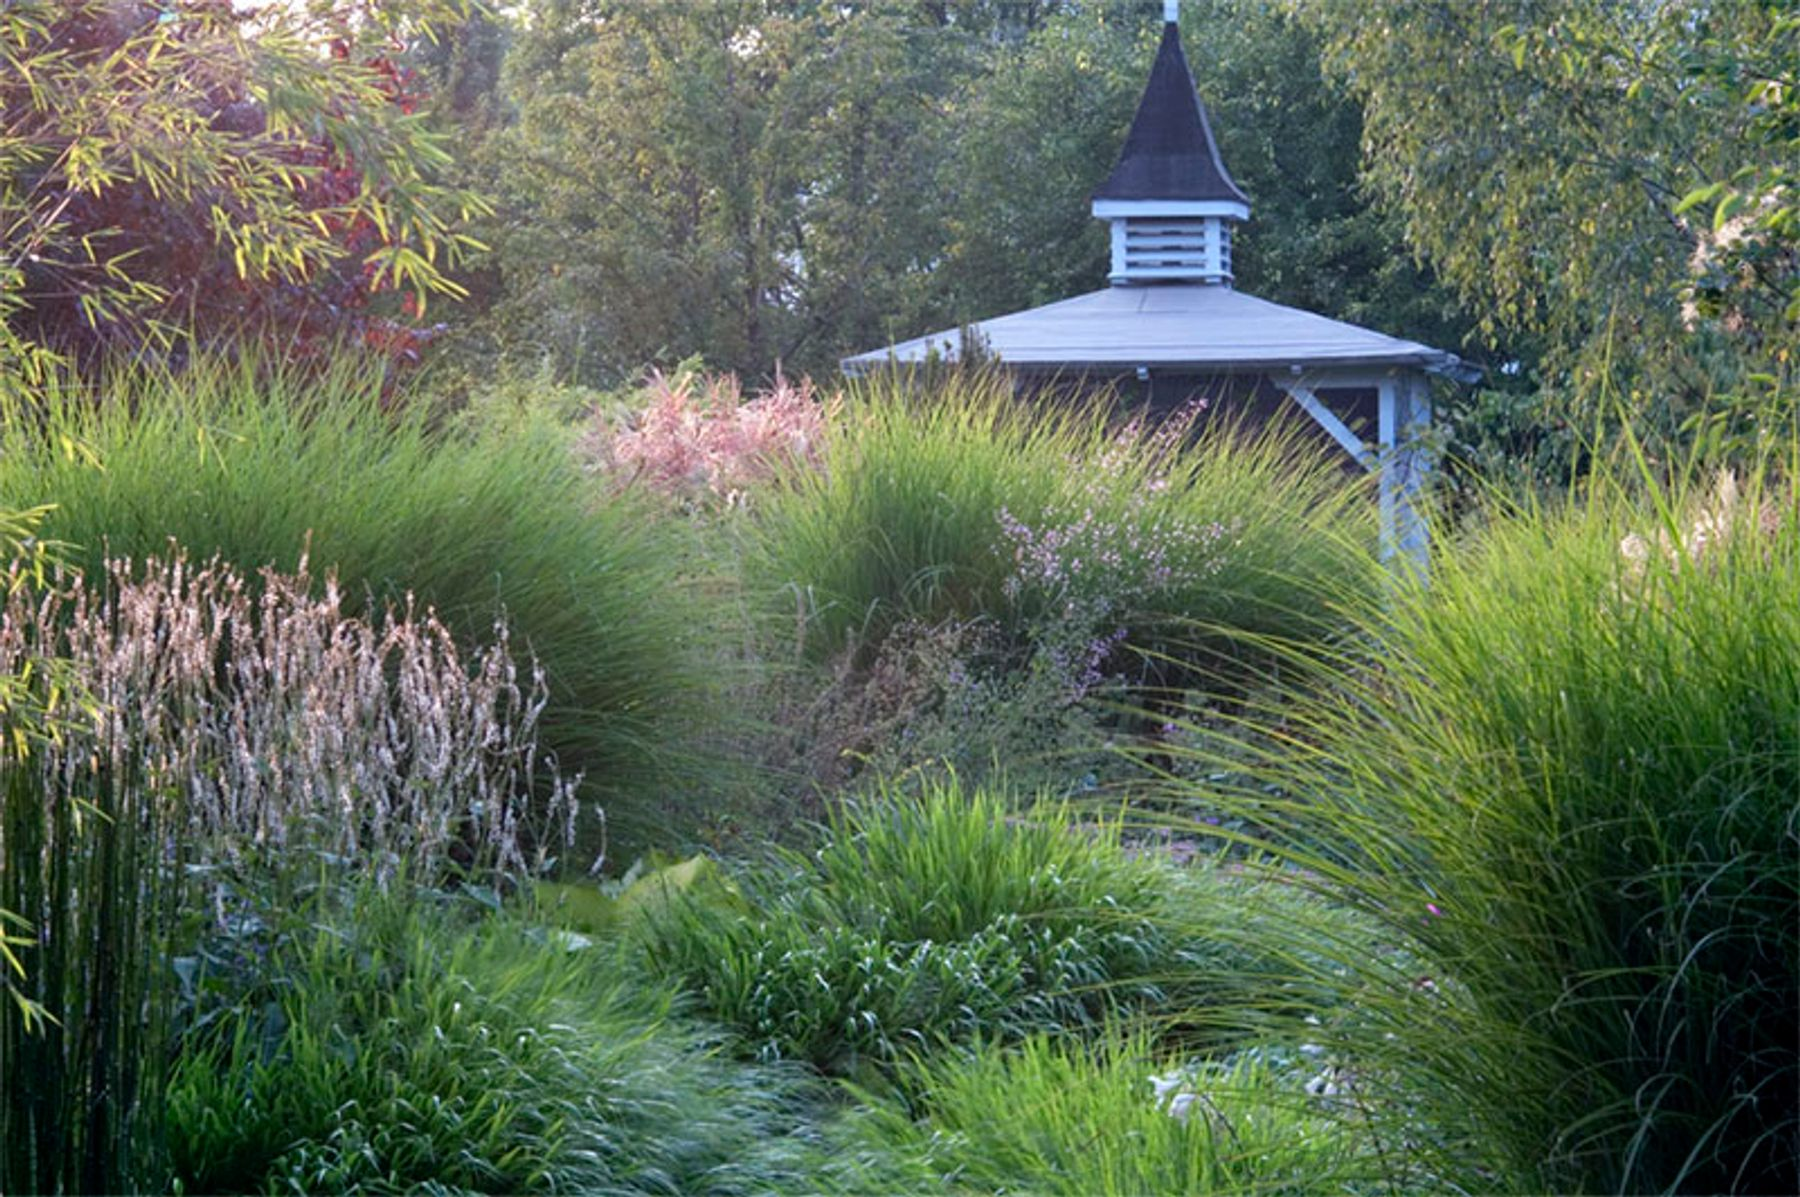 Exceptionnel Garden Ideas: Designing With Ornamental Grasses